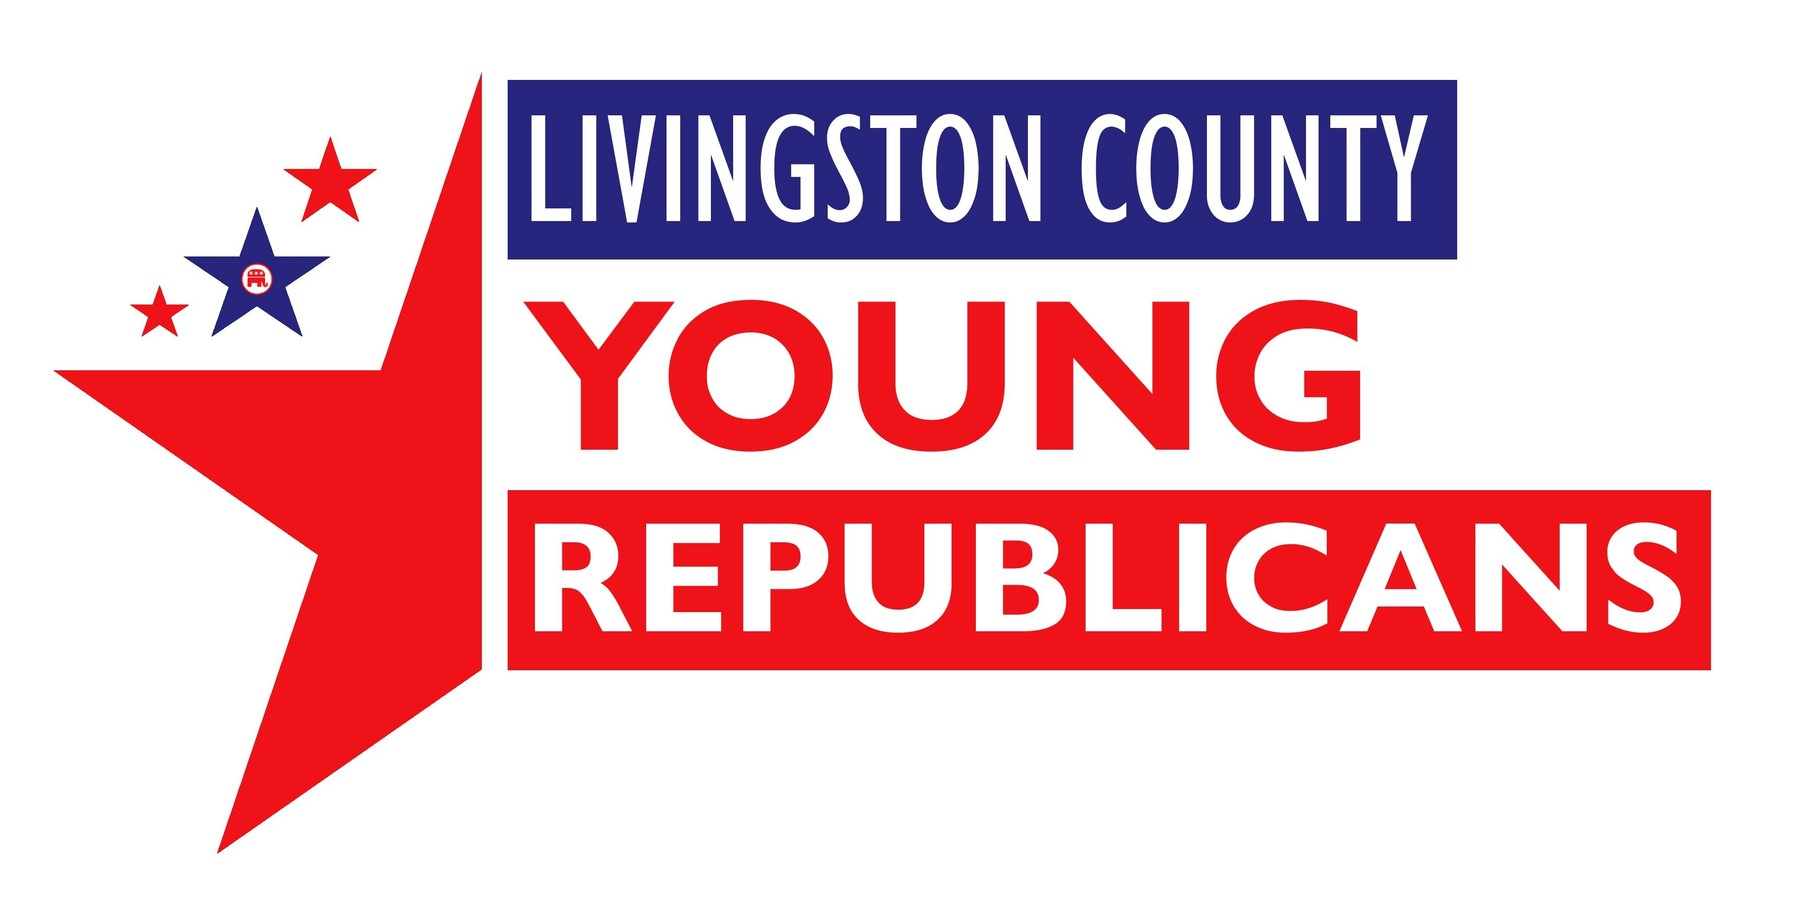 Livingston County Republican Party: Young Republican Donations